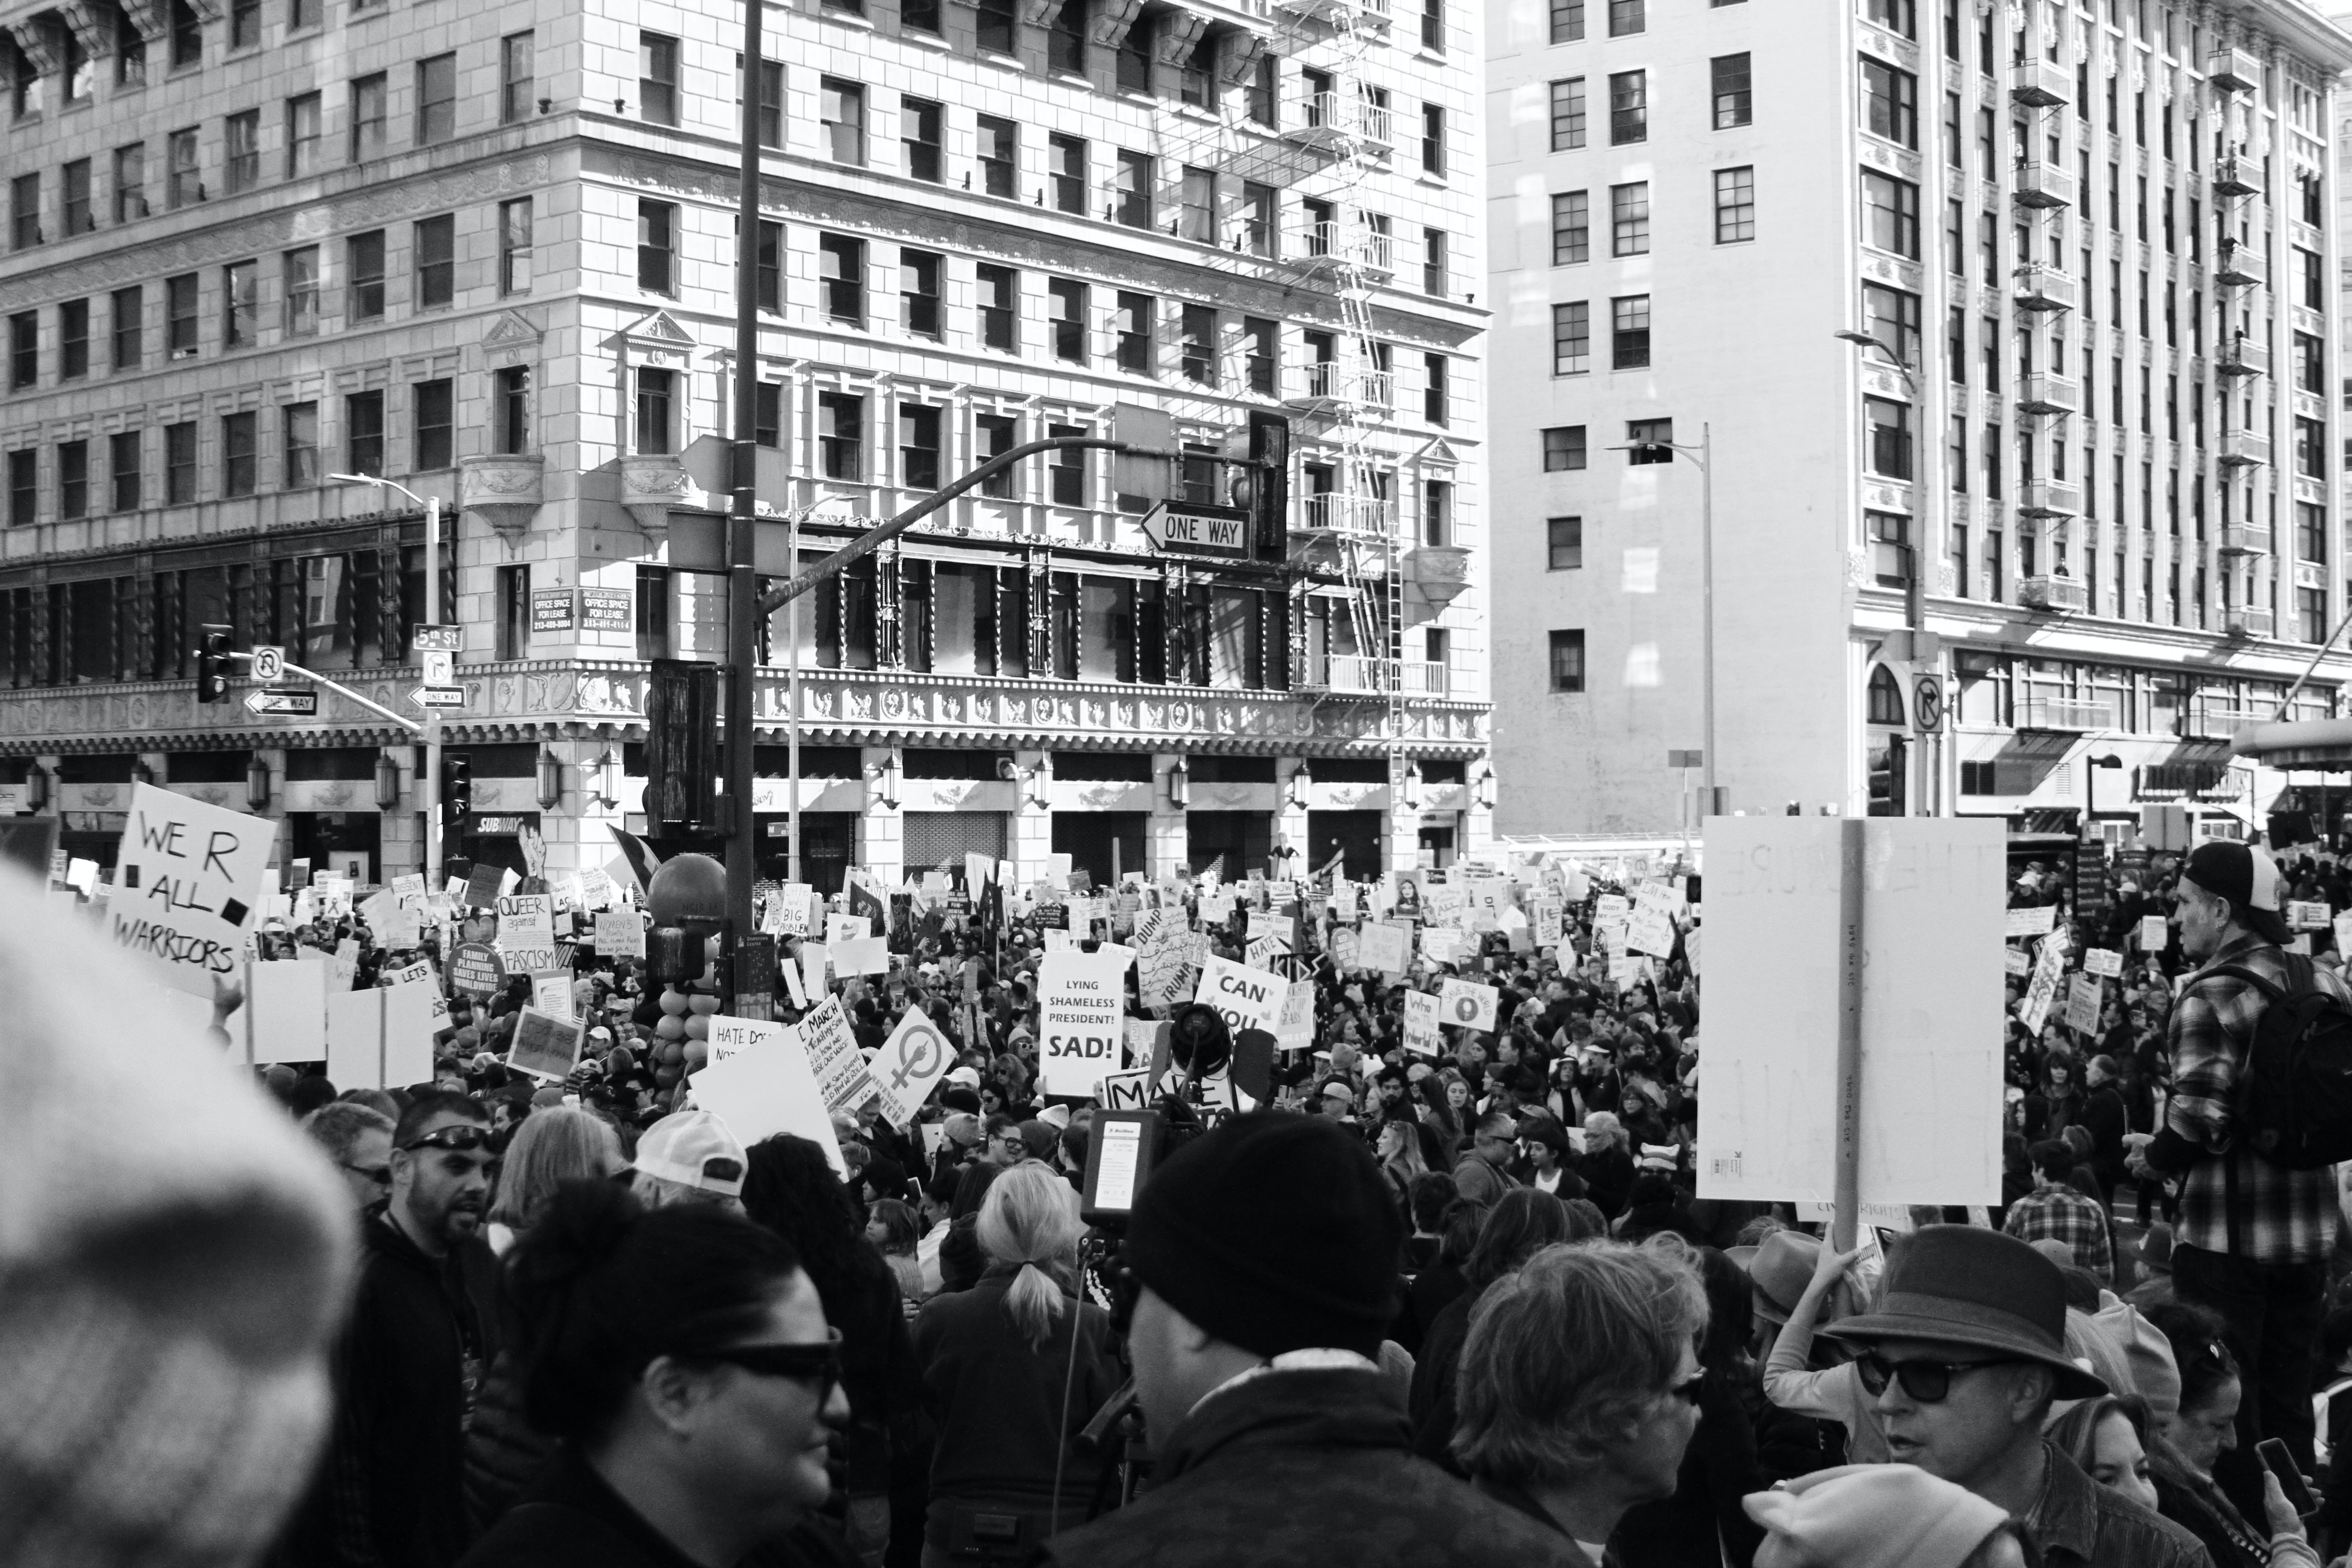 grayscale photography of people protesting in front of concrete building